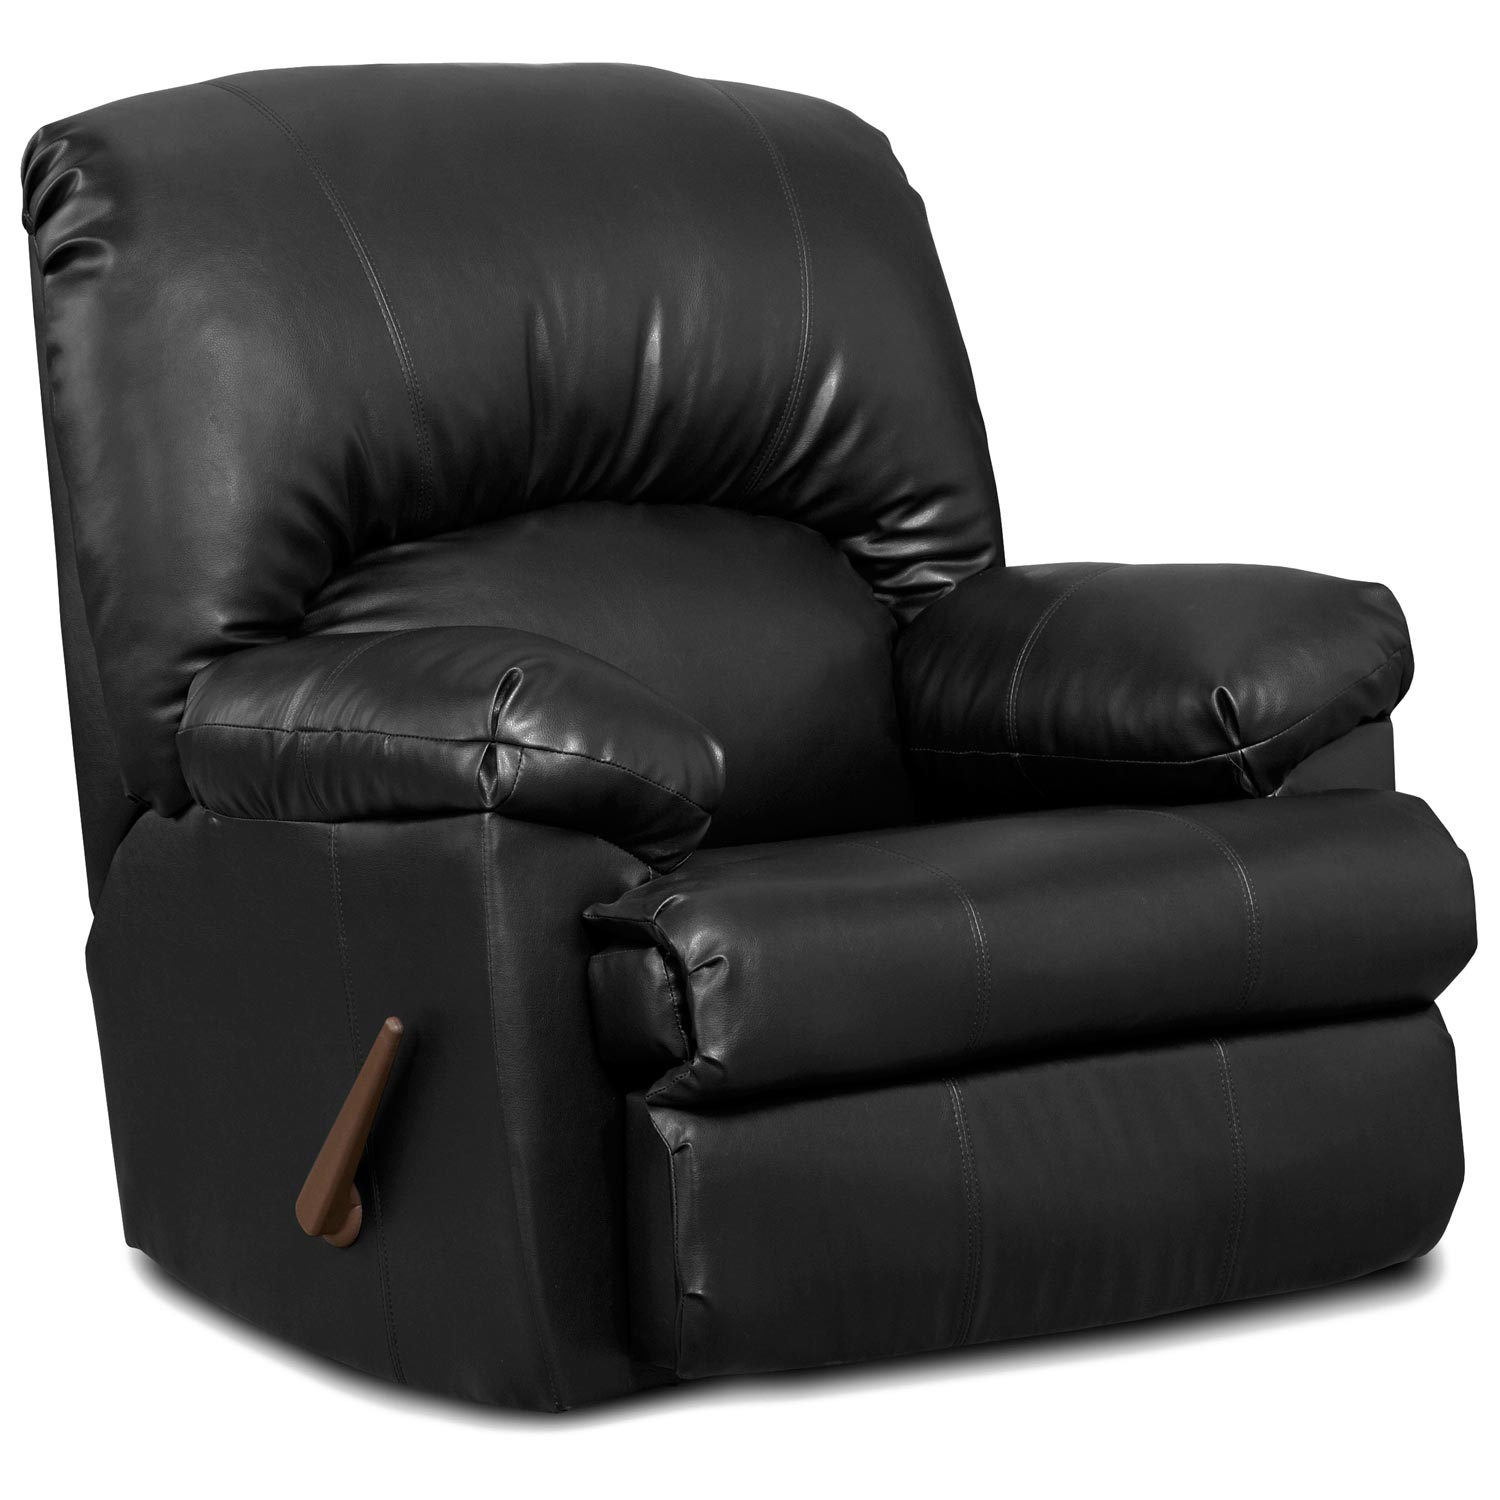 Charles Rocker Recliner Chair Black Leather Dcg Stores